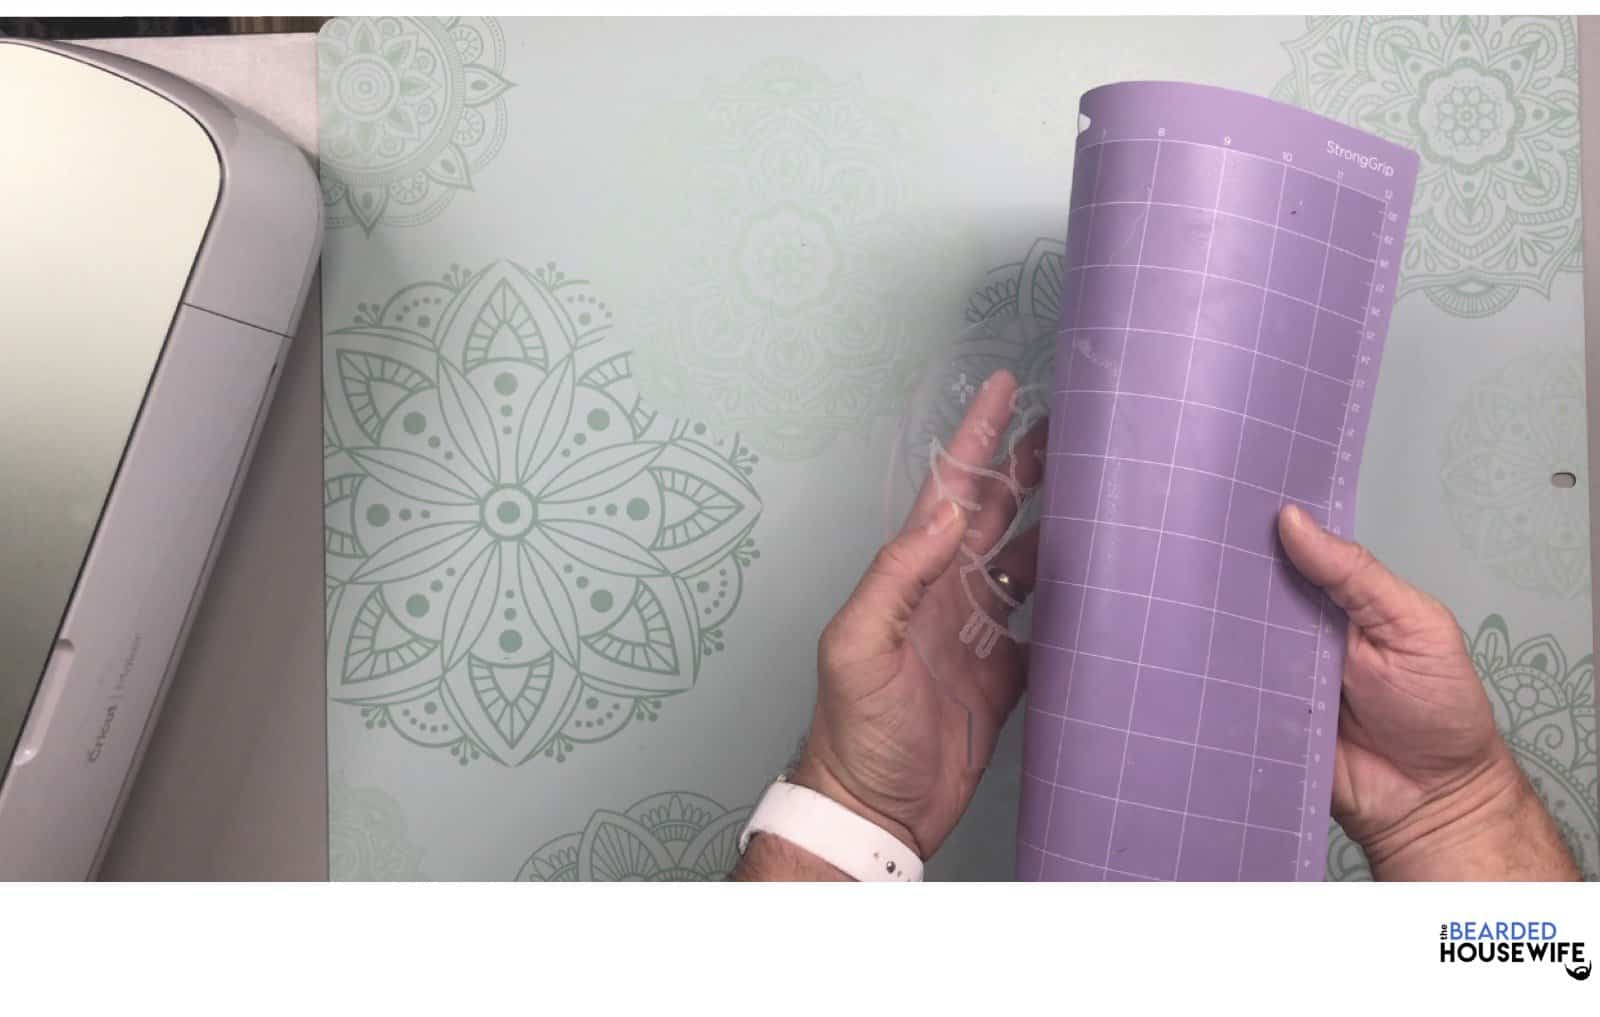 peel the mat away from the acrylic slowly